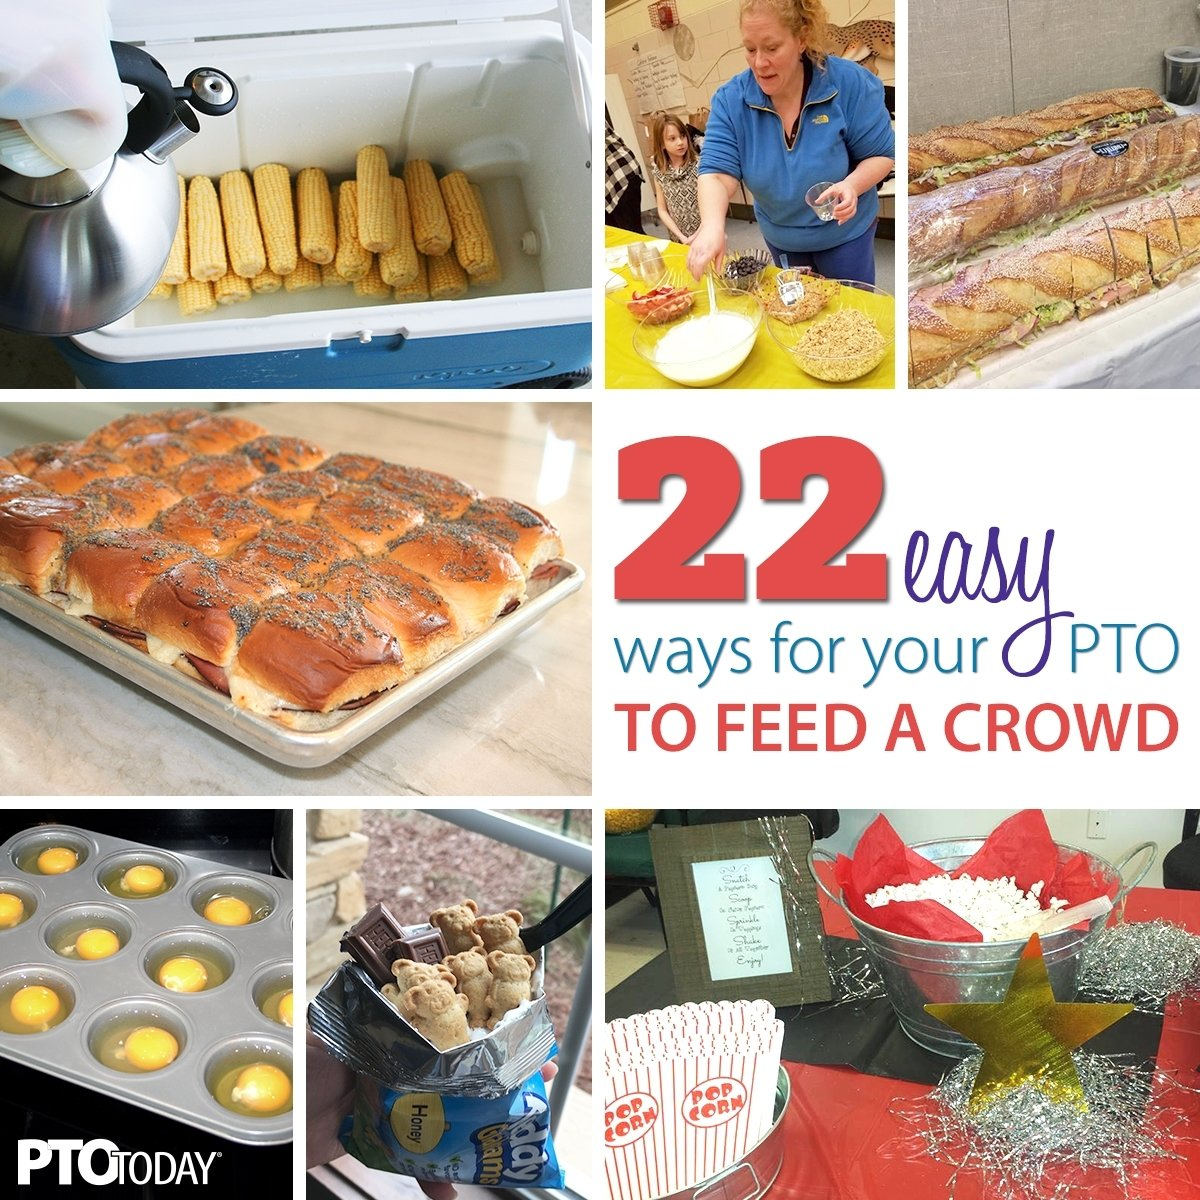 10 Trendy Lunch Ideas For A Crowd 22 easy meal ideas for large groups pto today 10 2020